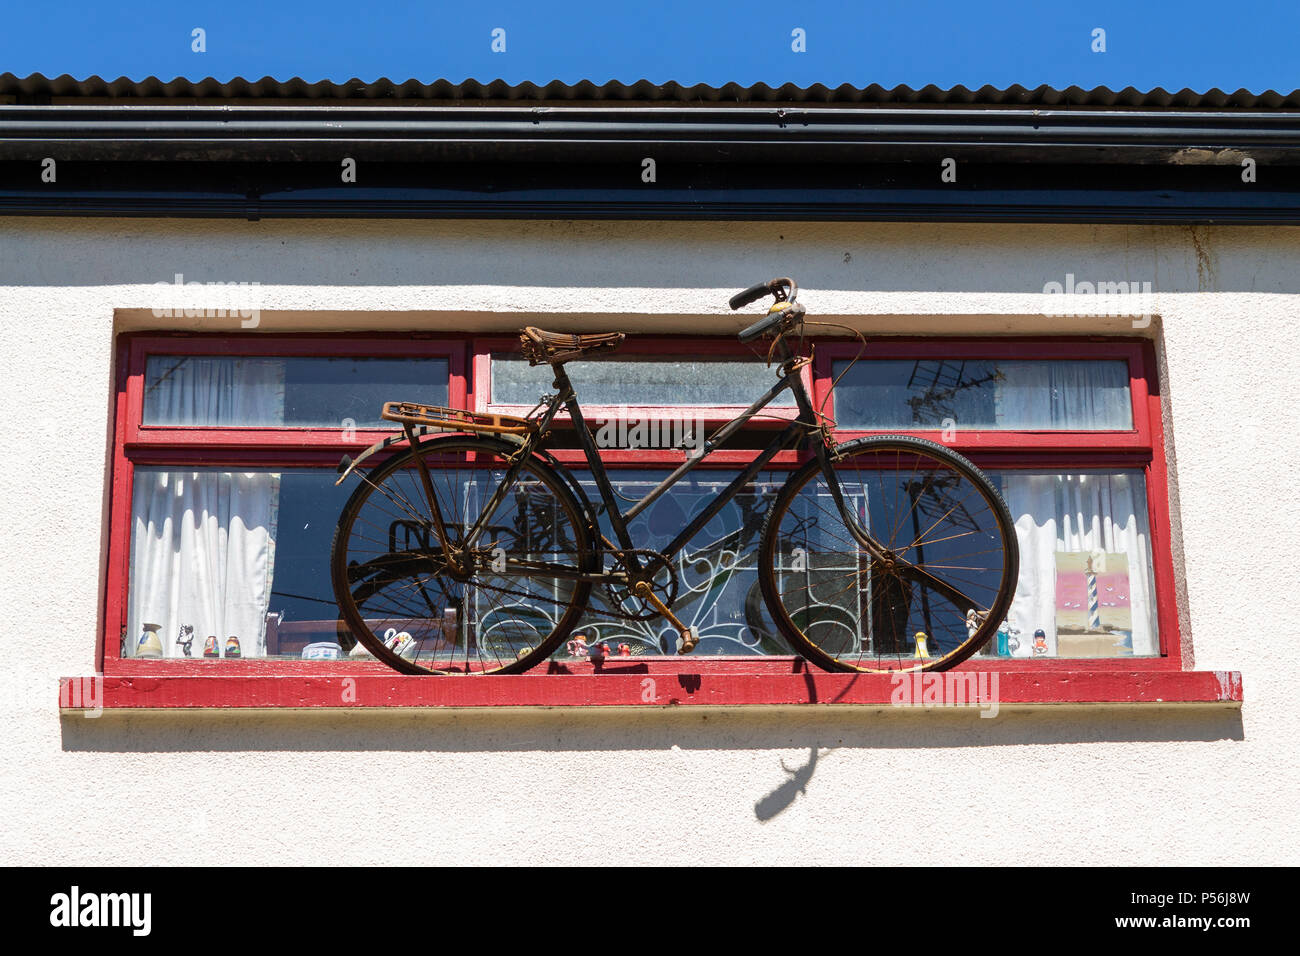 bicycle-or-bike-balanced-on-a-window-ledge-acting-as-a-sign-for-the-shop-below-P56J8W.jpg